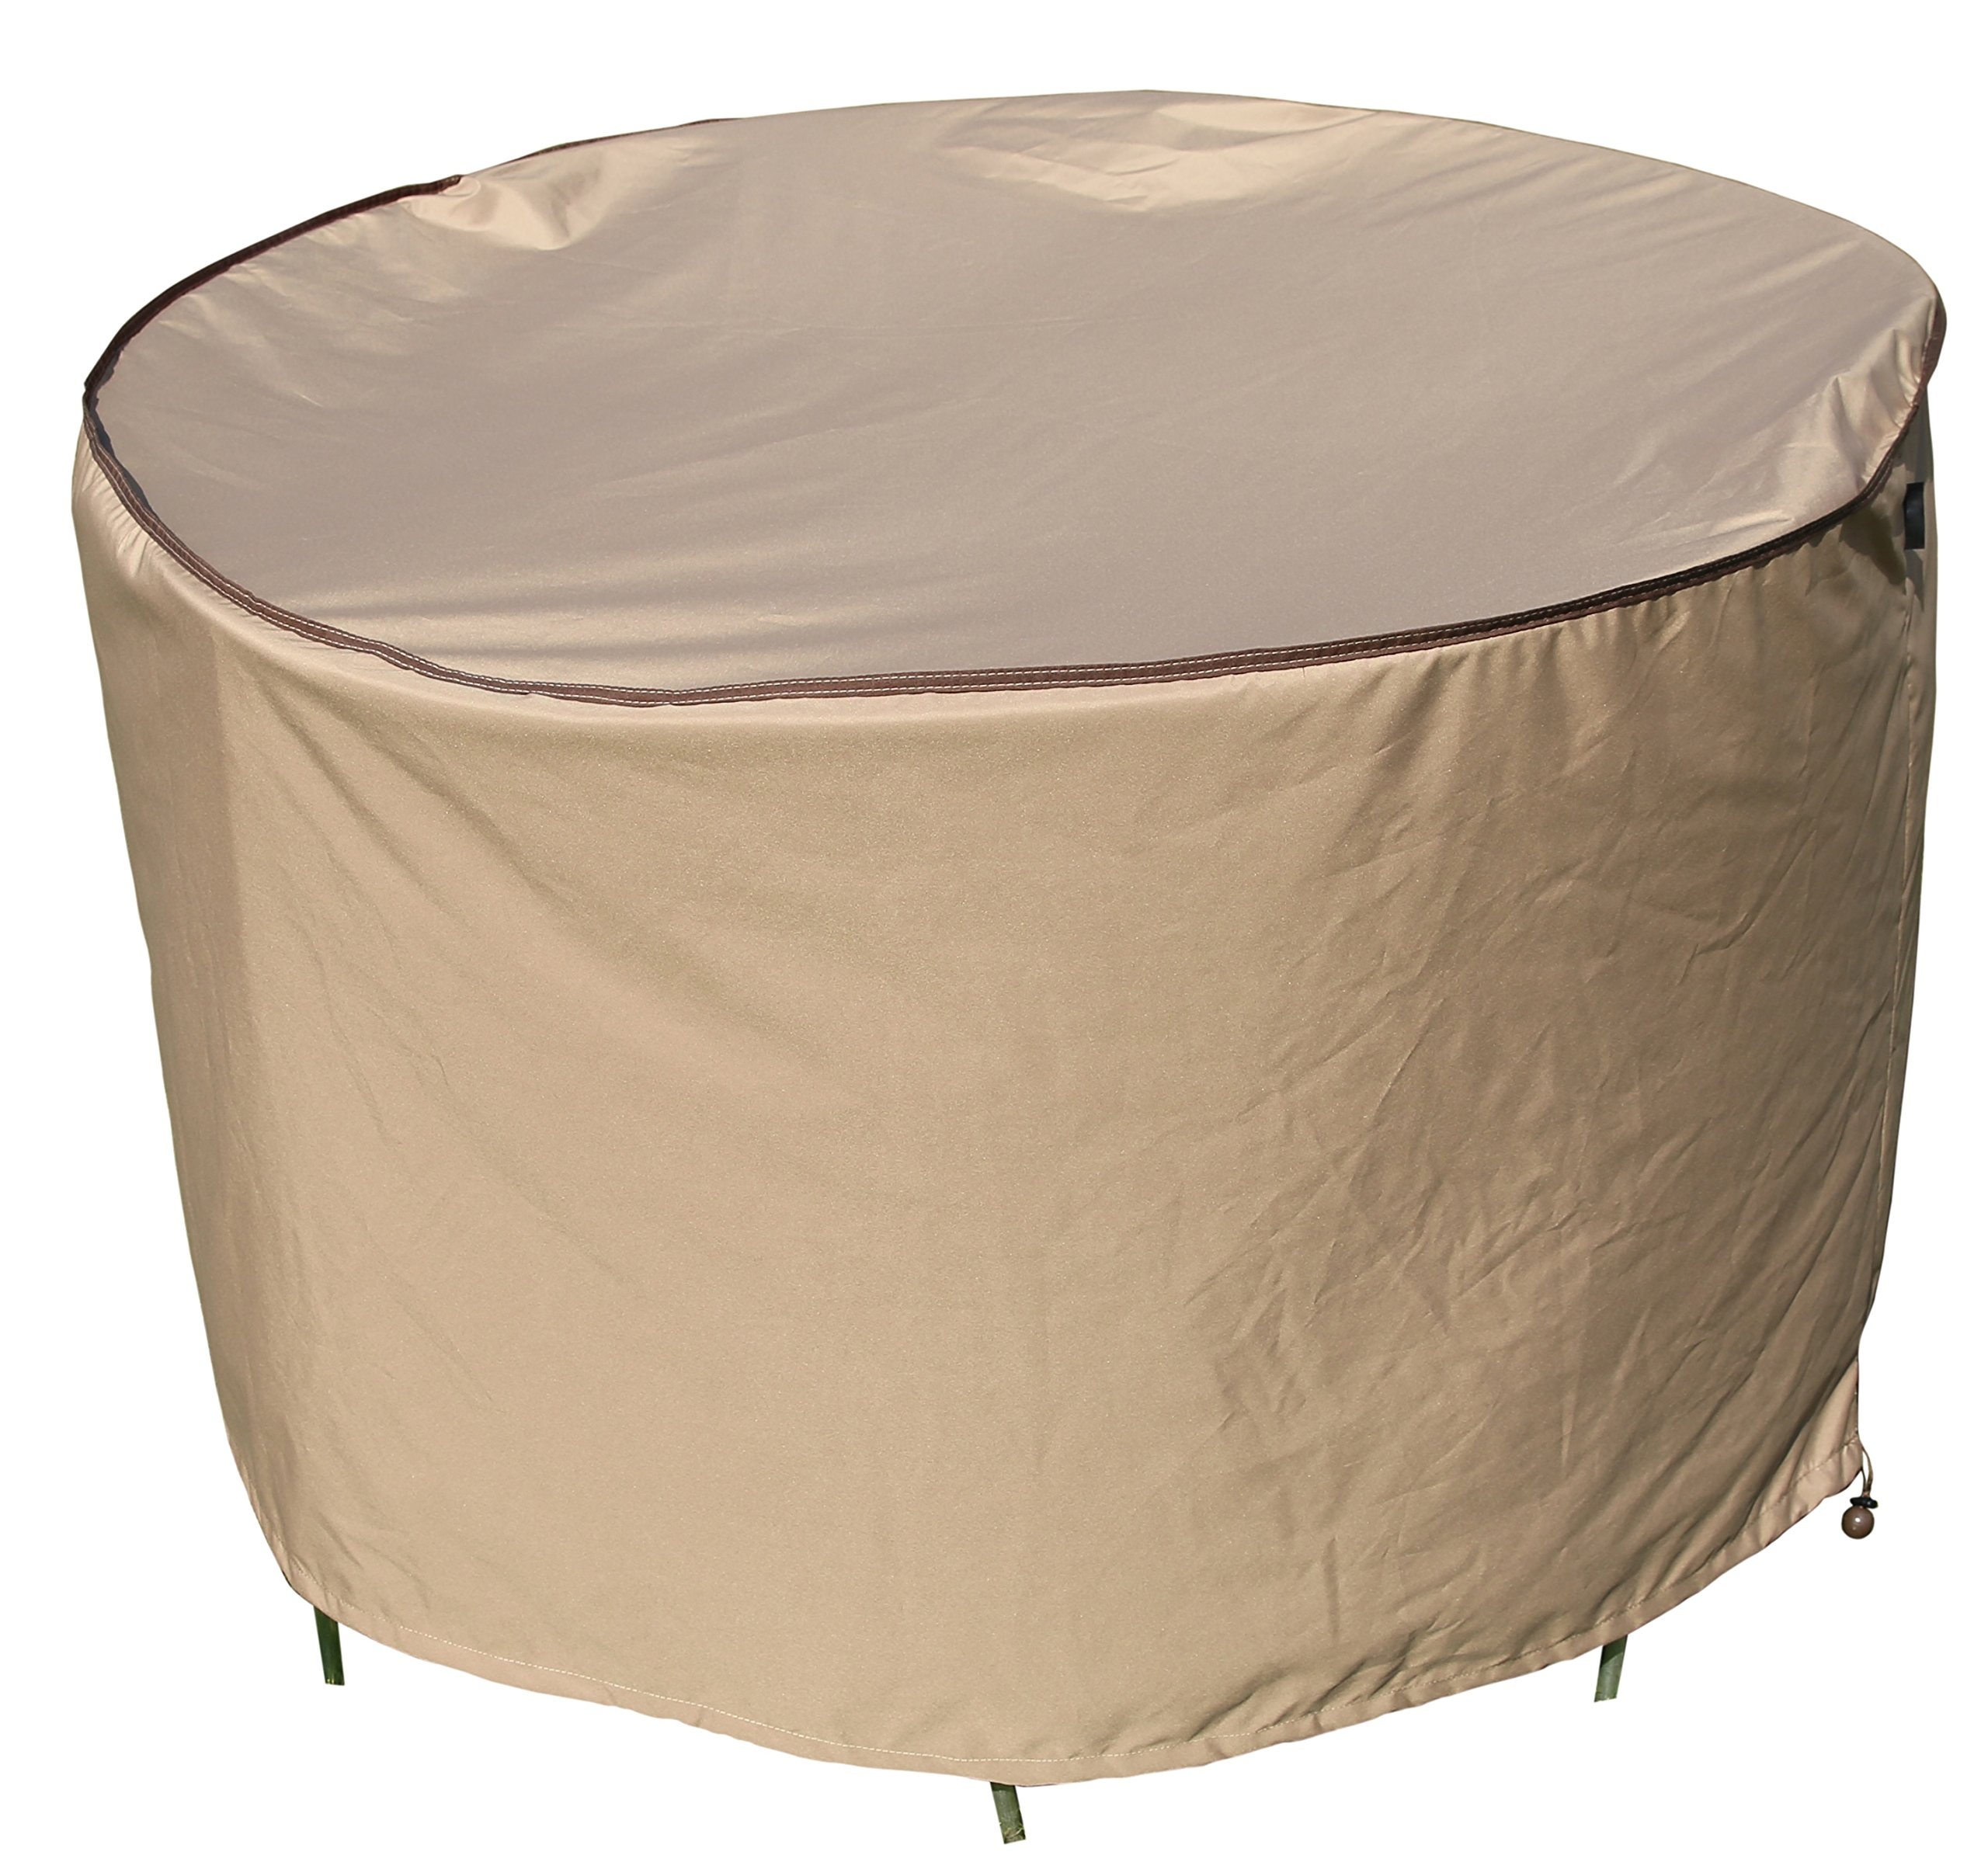 SORARA Round Table and Chair Set Cover Outdoor Porch Furniture Cover, Water Proof, All Weather Protection, 70'' Dia.